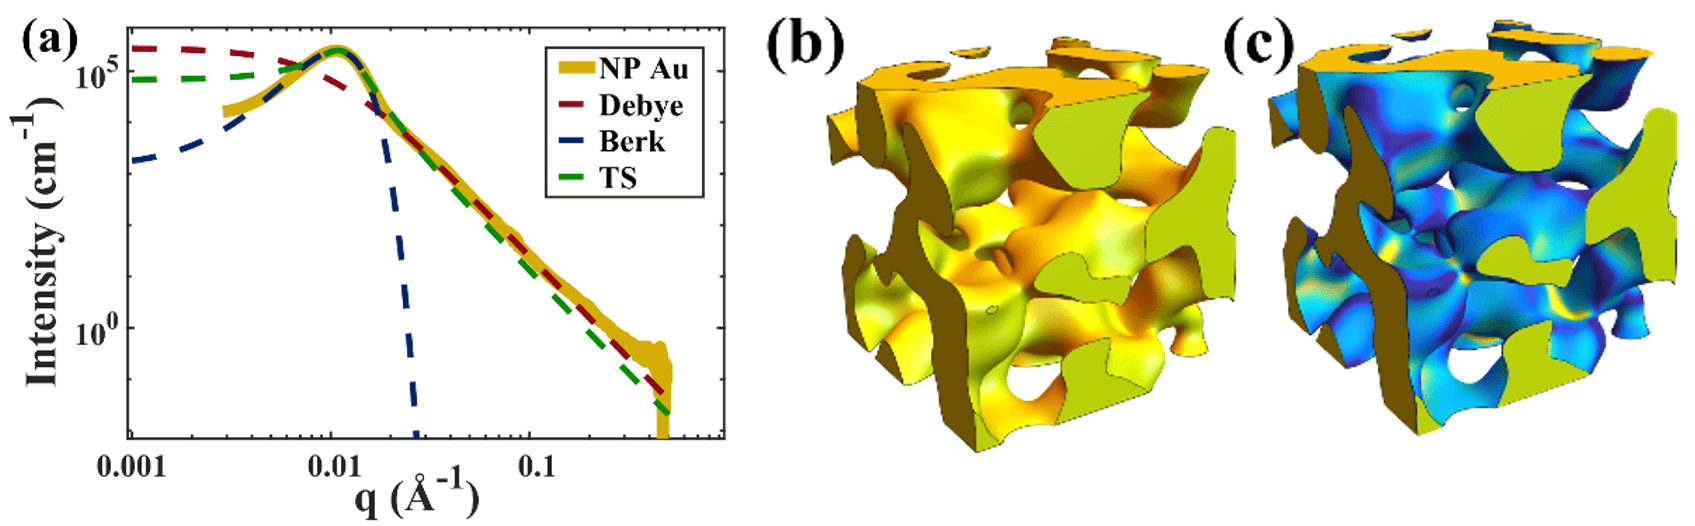 Typical scattering intensity for NP-Au (gold curve) and realistic generated structures of the sample